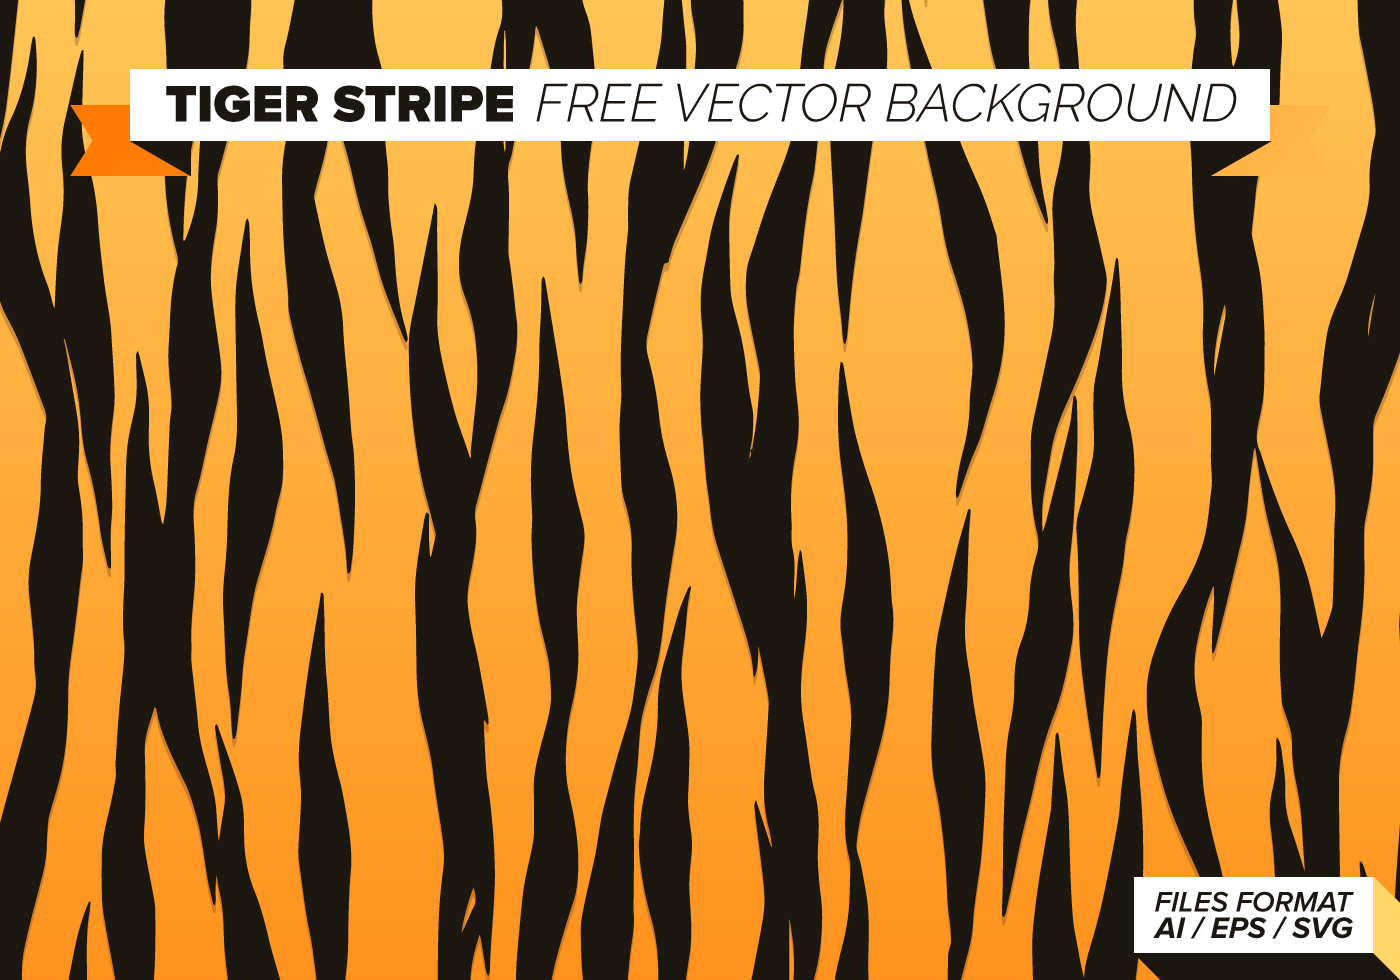 Variant, yes tiger strip layout